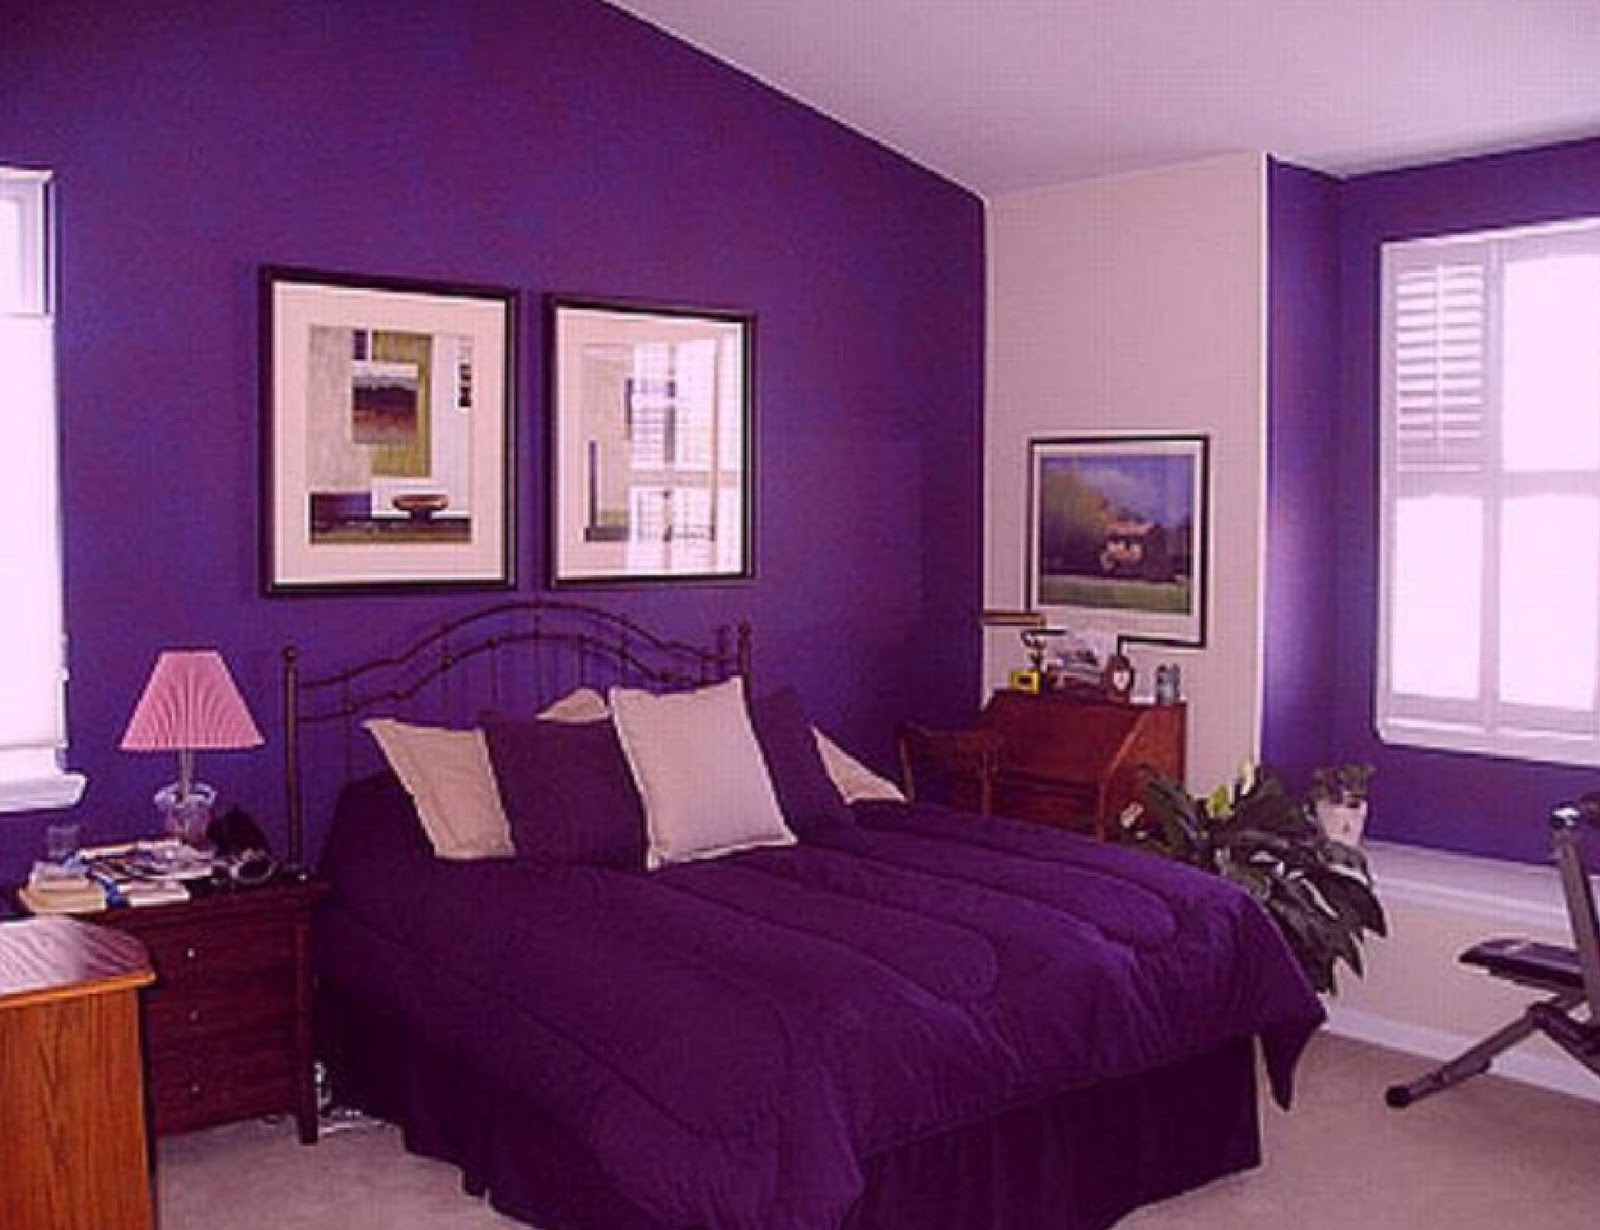 Dwell Decor Hot Purple Bedroom Designs